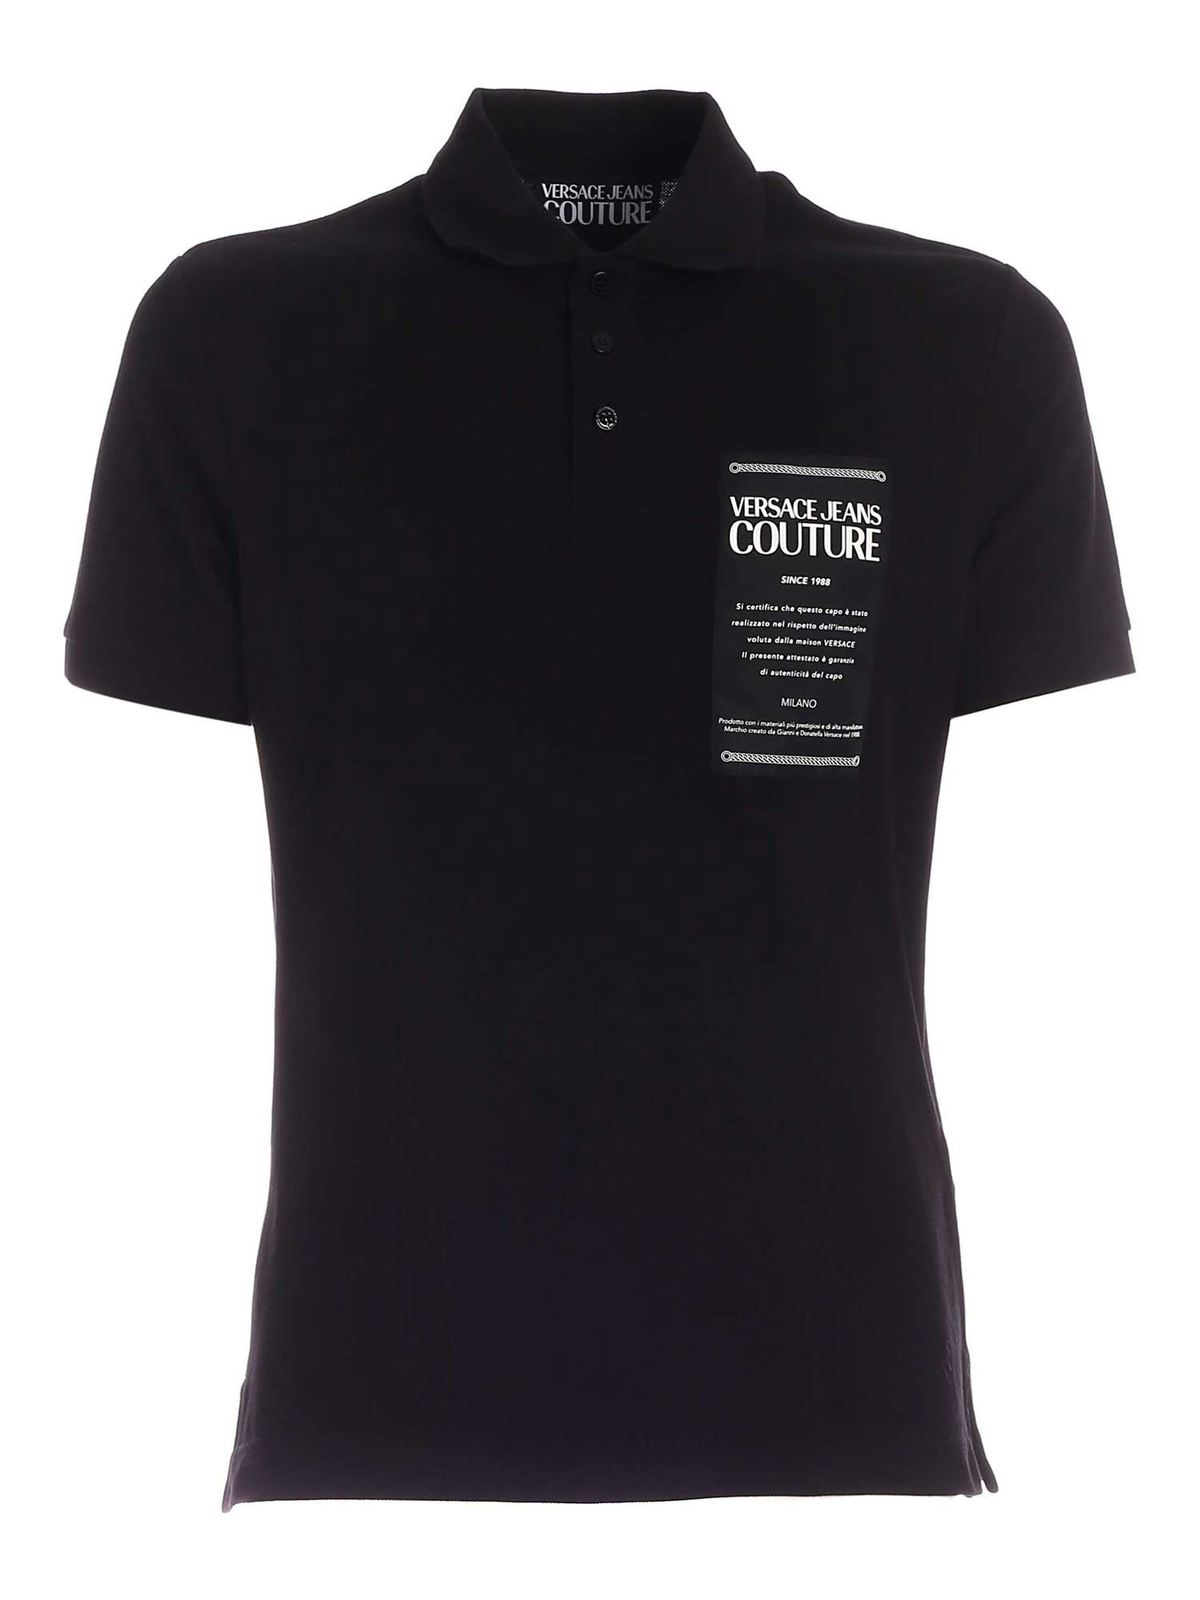 VERSACE JEANS COUTURE LOGO PATCH POLO SHIRT IN BLACK